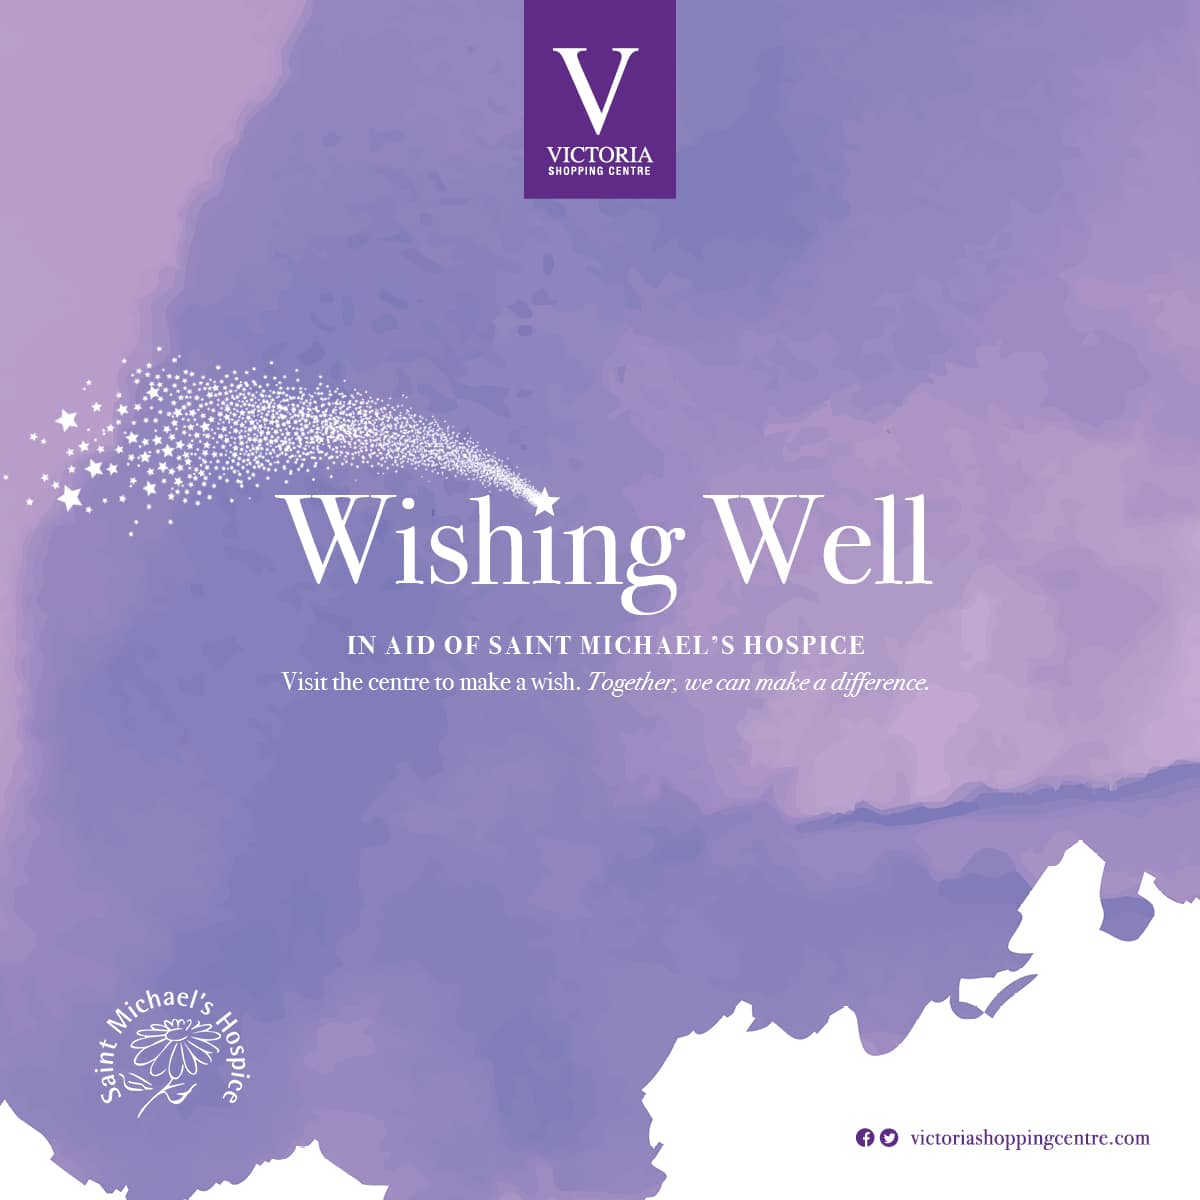 Victoria Shopping Centre's Wishing Well